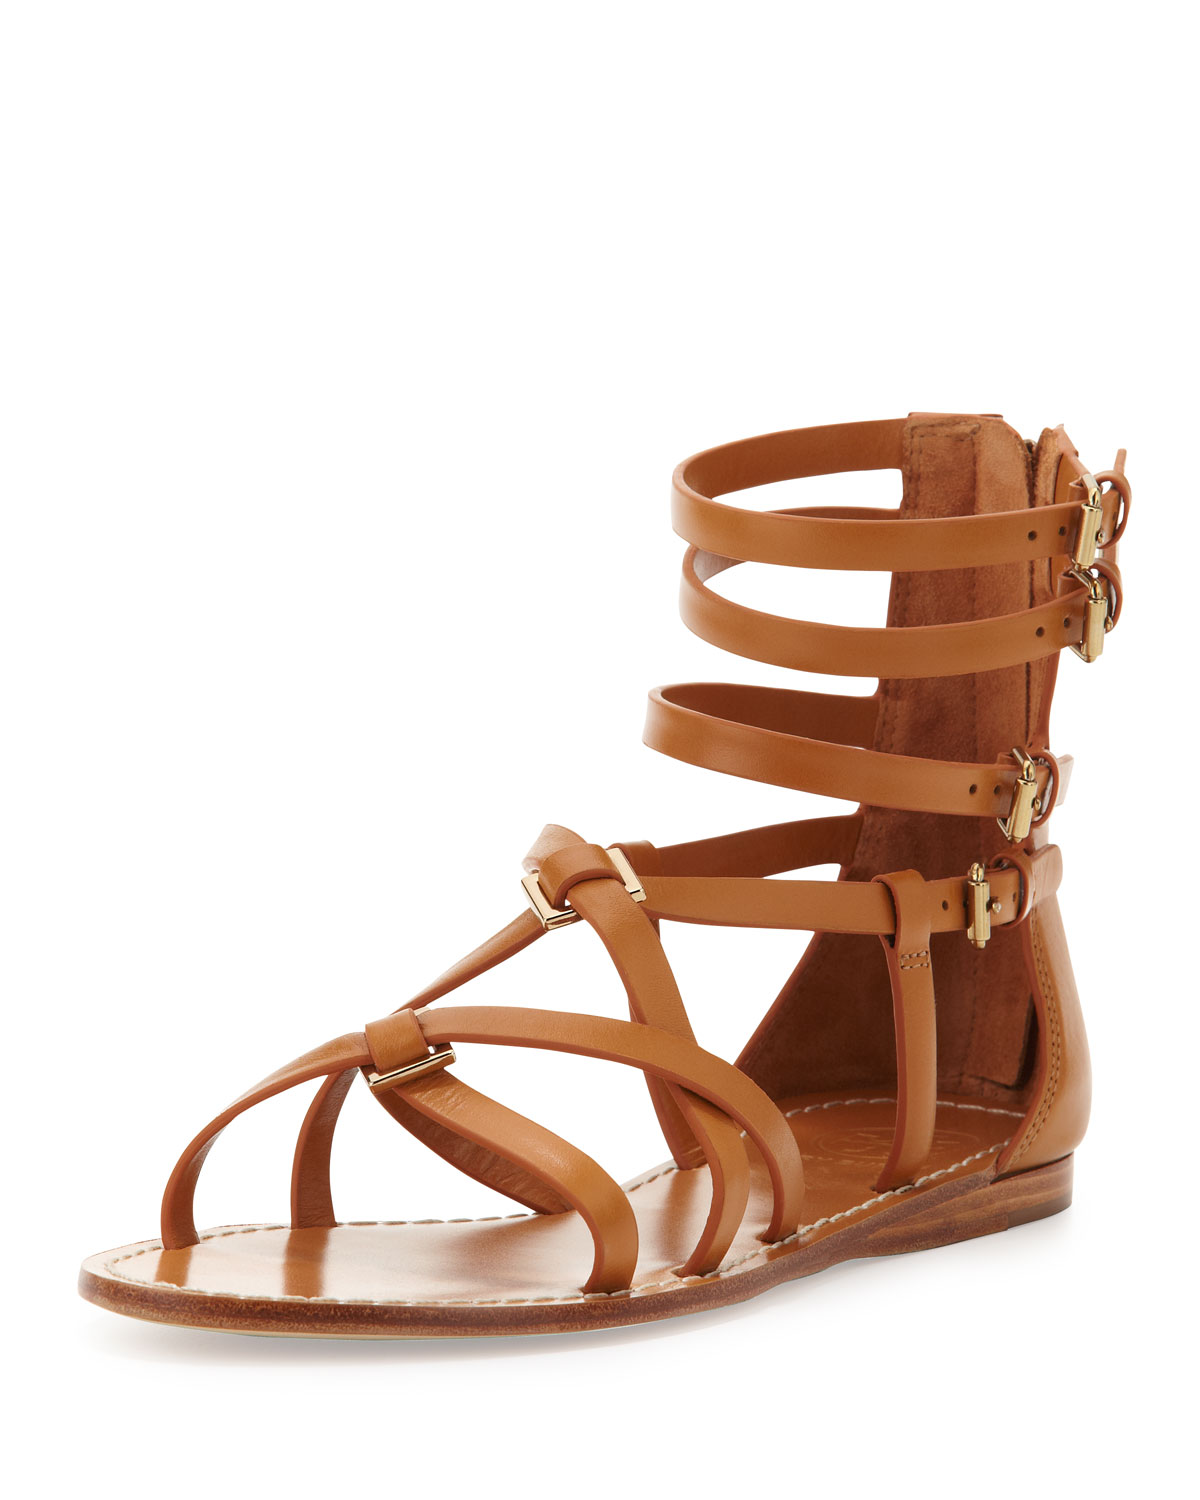 Tory Burch Lucas Leather Gladiator Sandal Custom Tan In